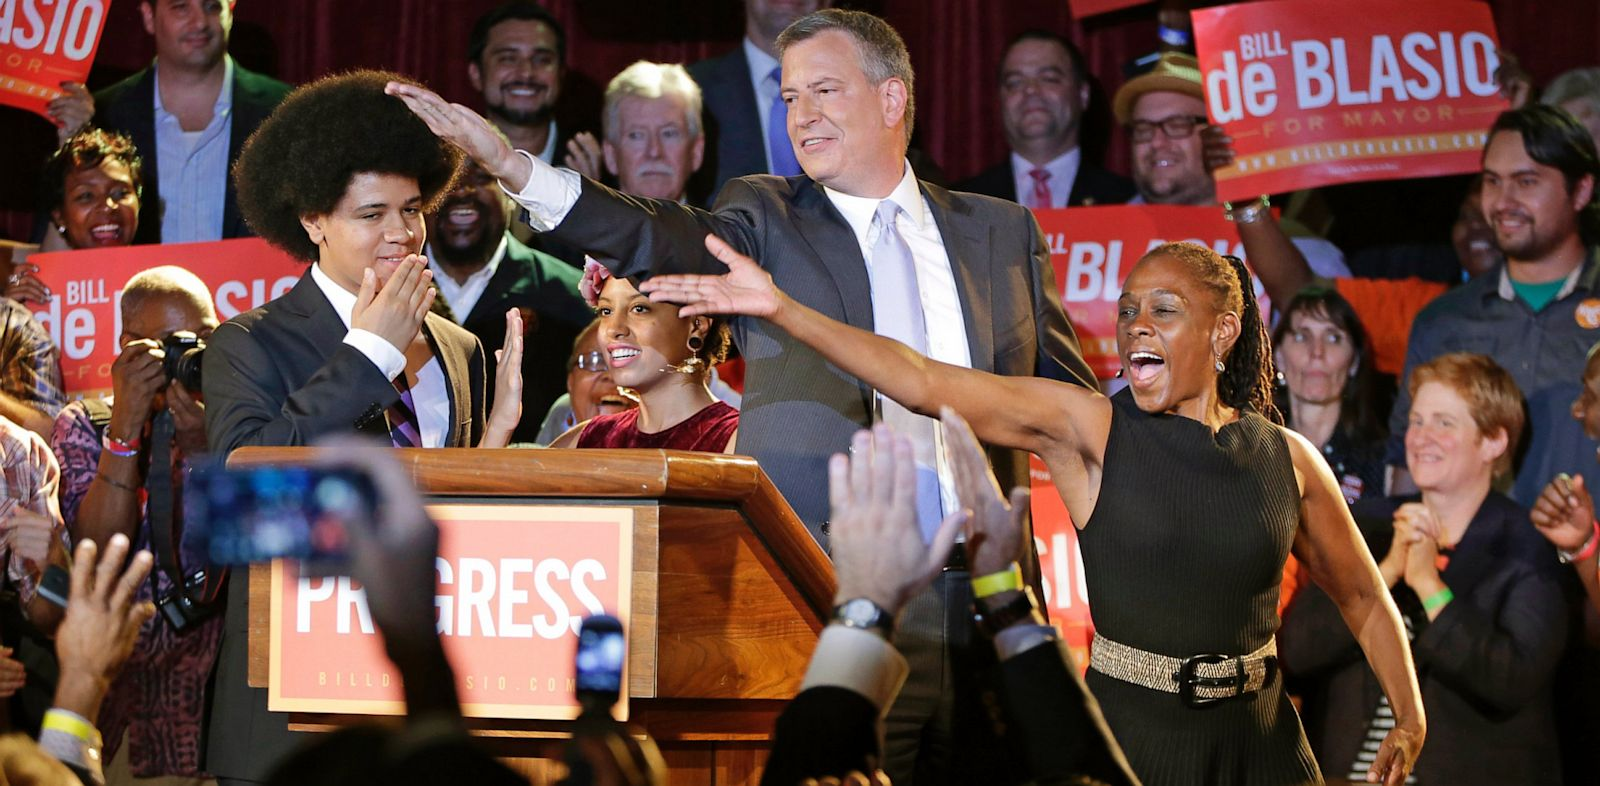 PHOTO: Bill, Chirlane and Dante De Blasio